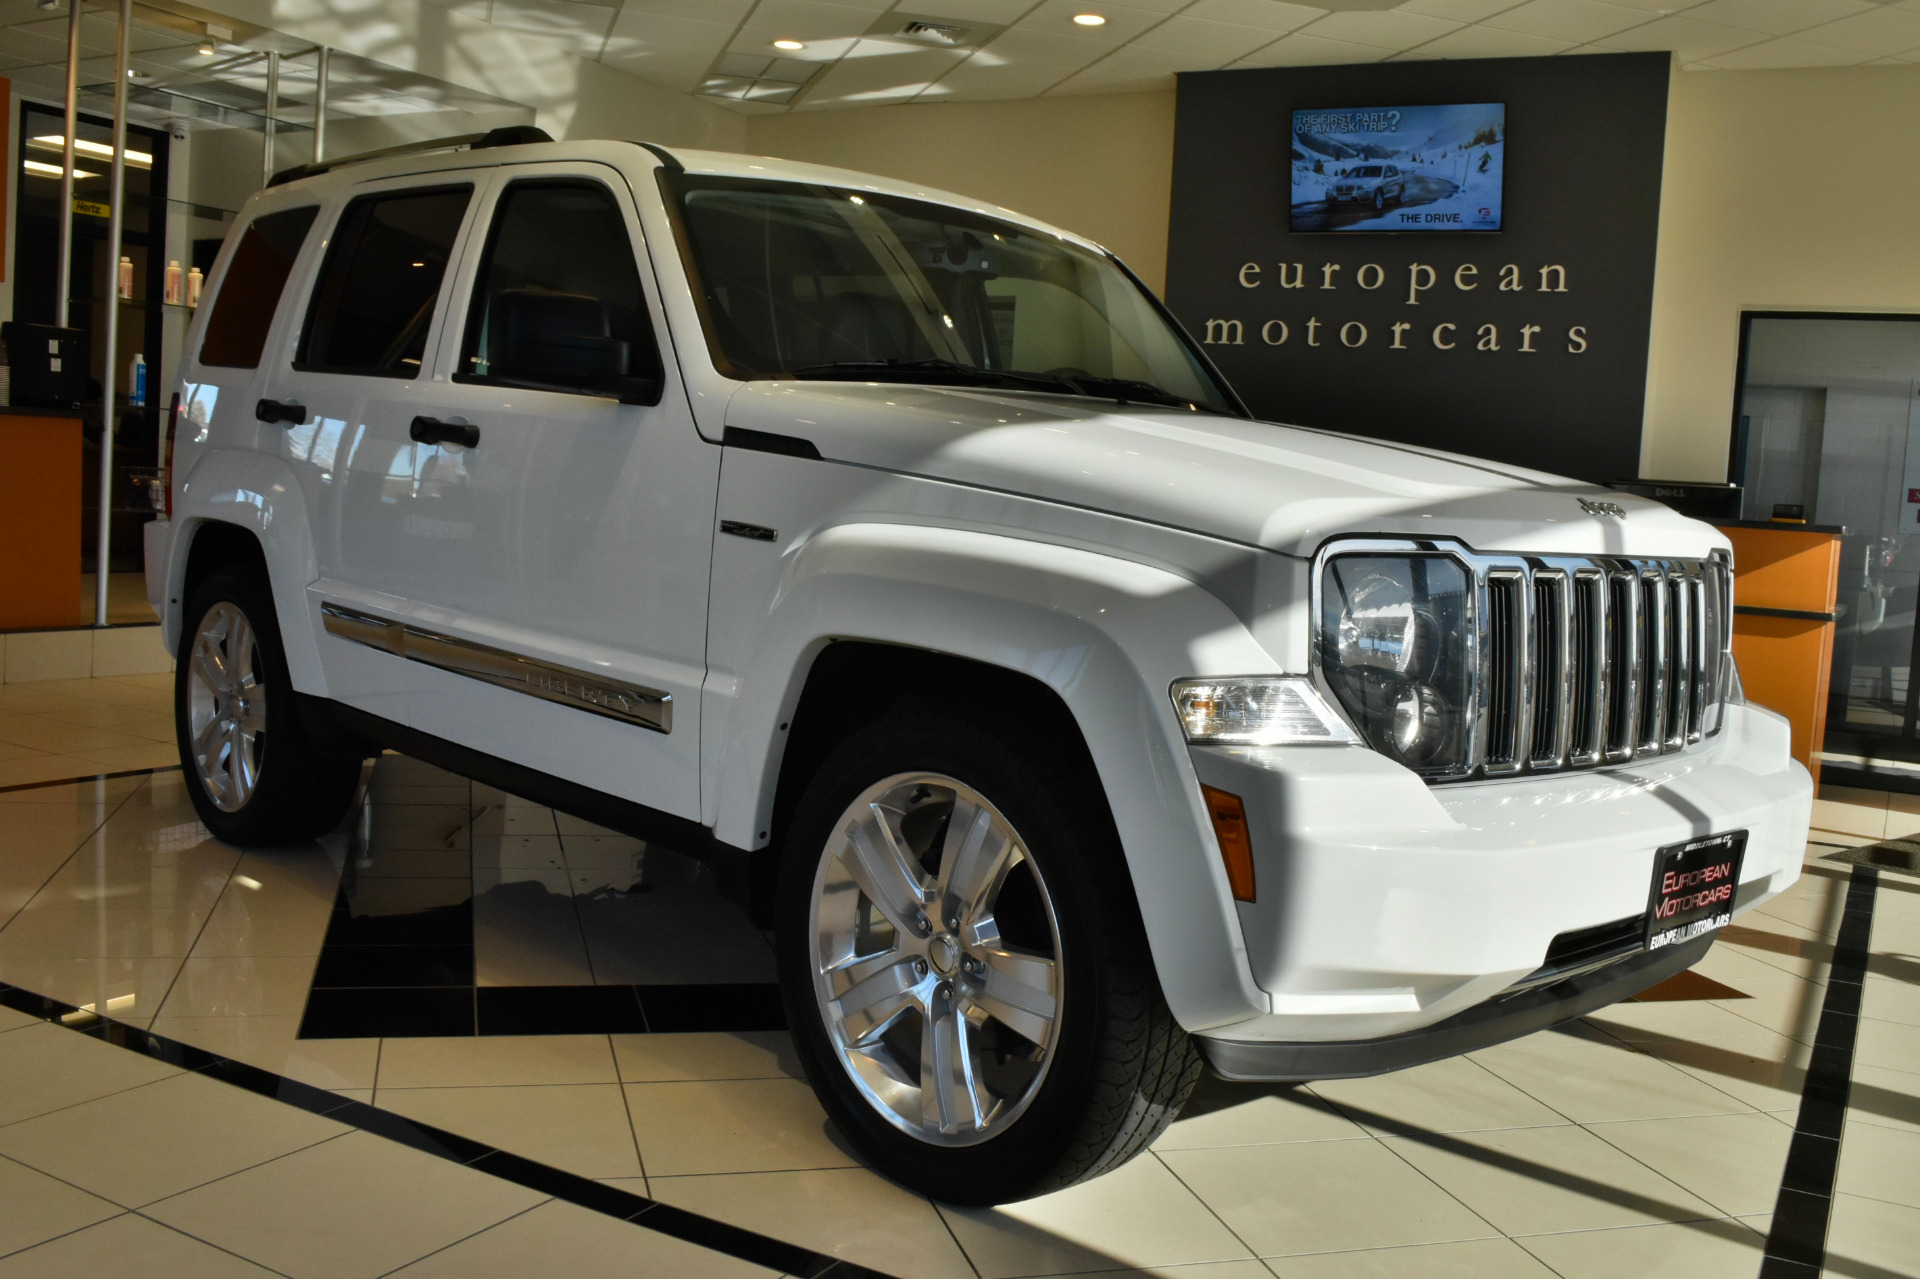 2012 jeep liberty jet edition for sale near middletown ct. Black Bedroom Furniture Sets. Home Design Ideas